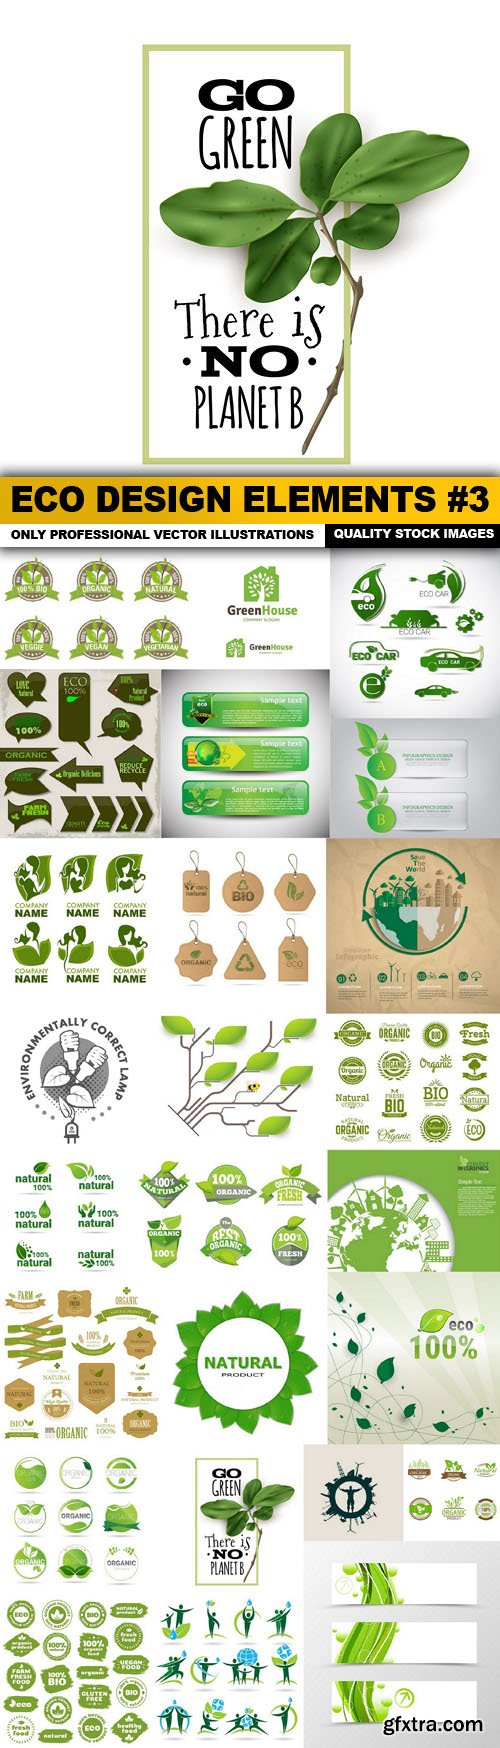 ECO Design Elements #3 - 25 Vector